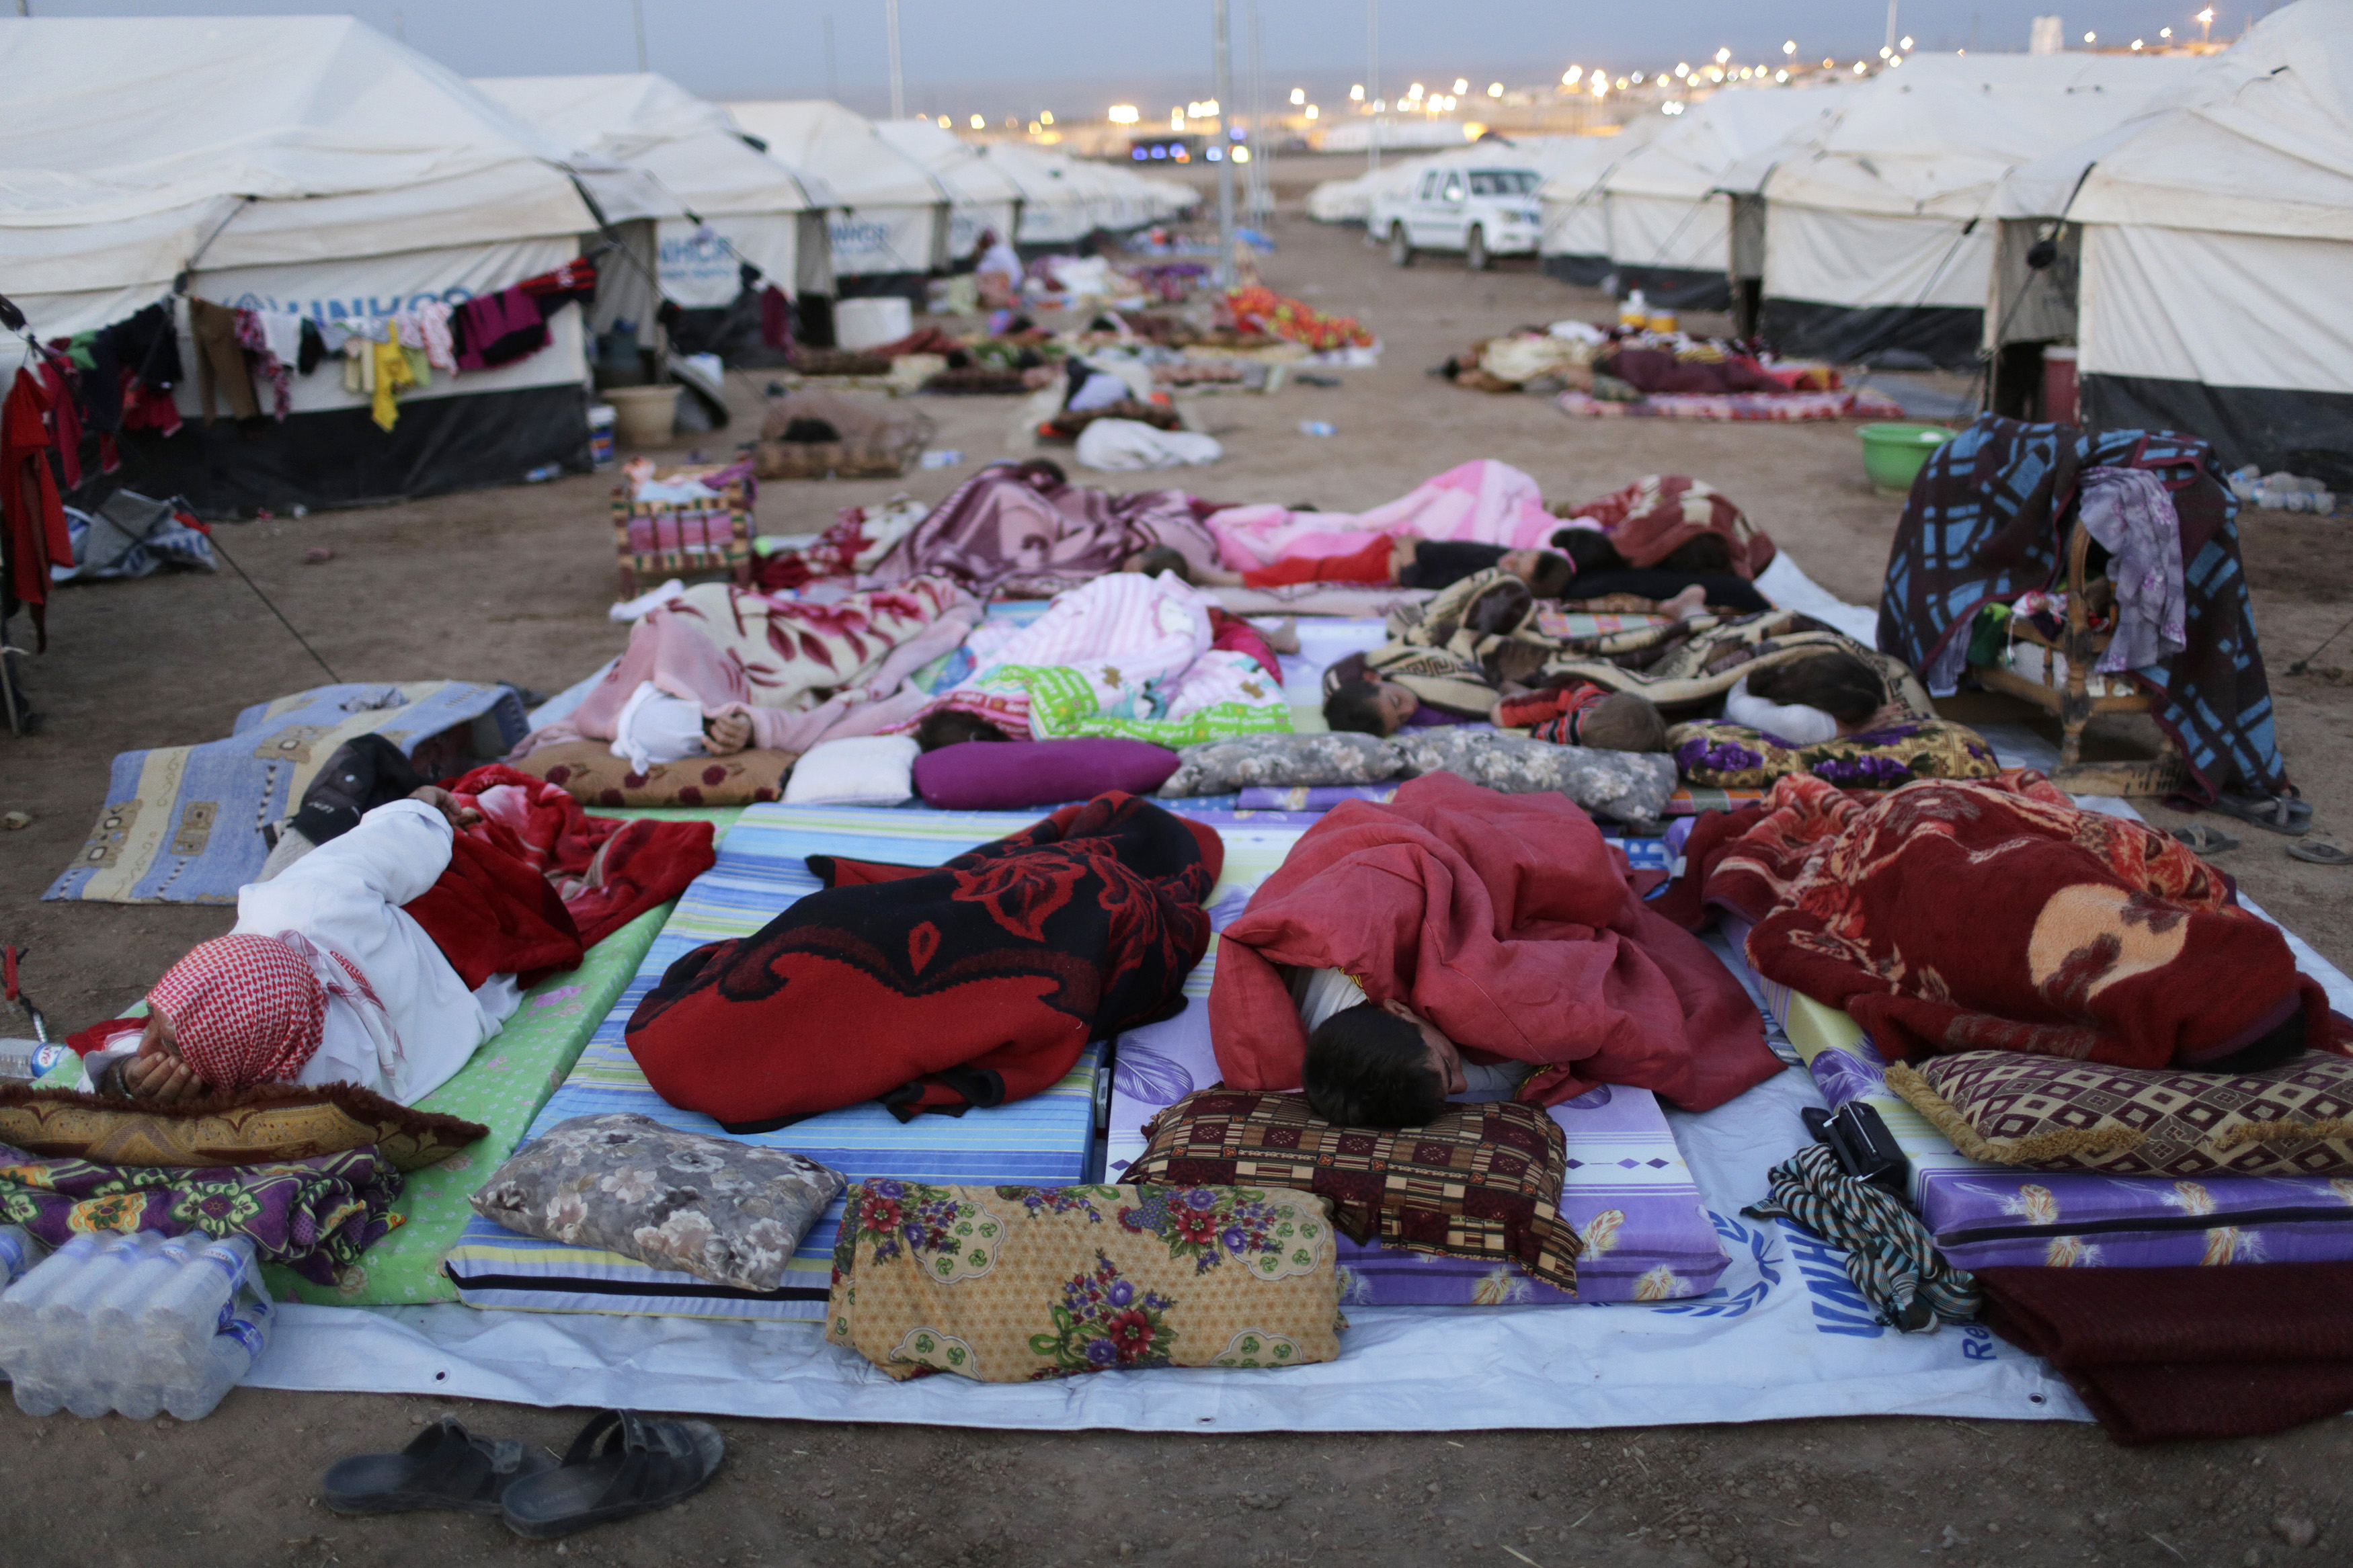 Displaced people from the minority Yazidi sect, who fled violence in the Iraqi town of Sinjar, sleep on the ground at the Bajed Kadal refugee camp in southwest Dohuk province on August 23, 2014.